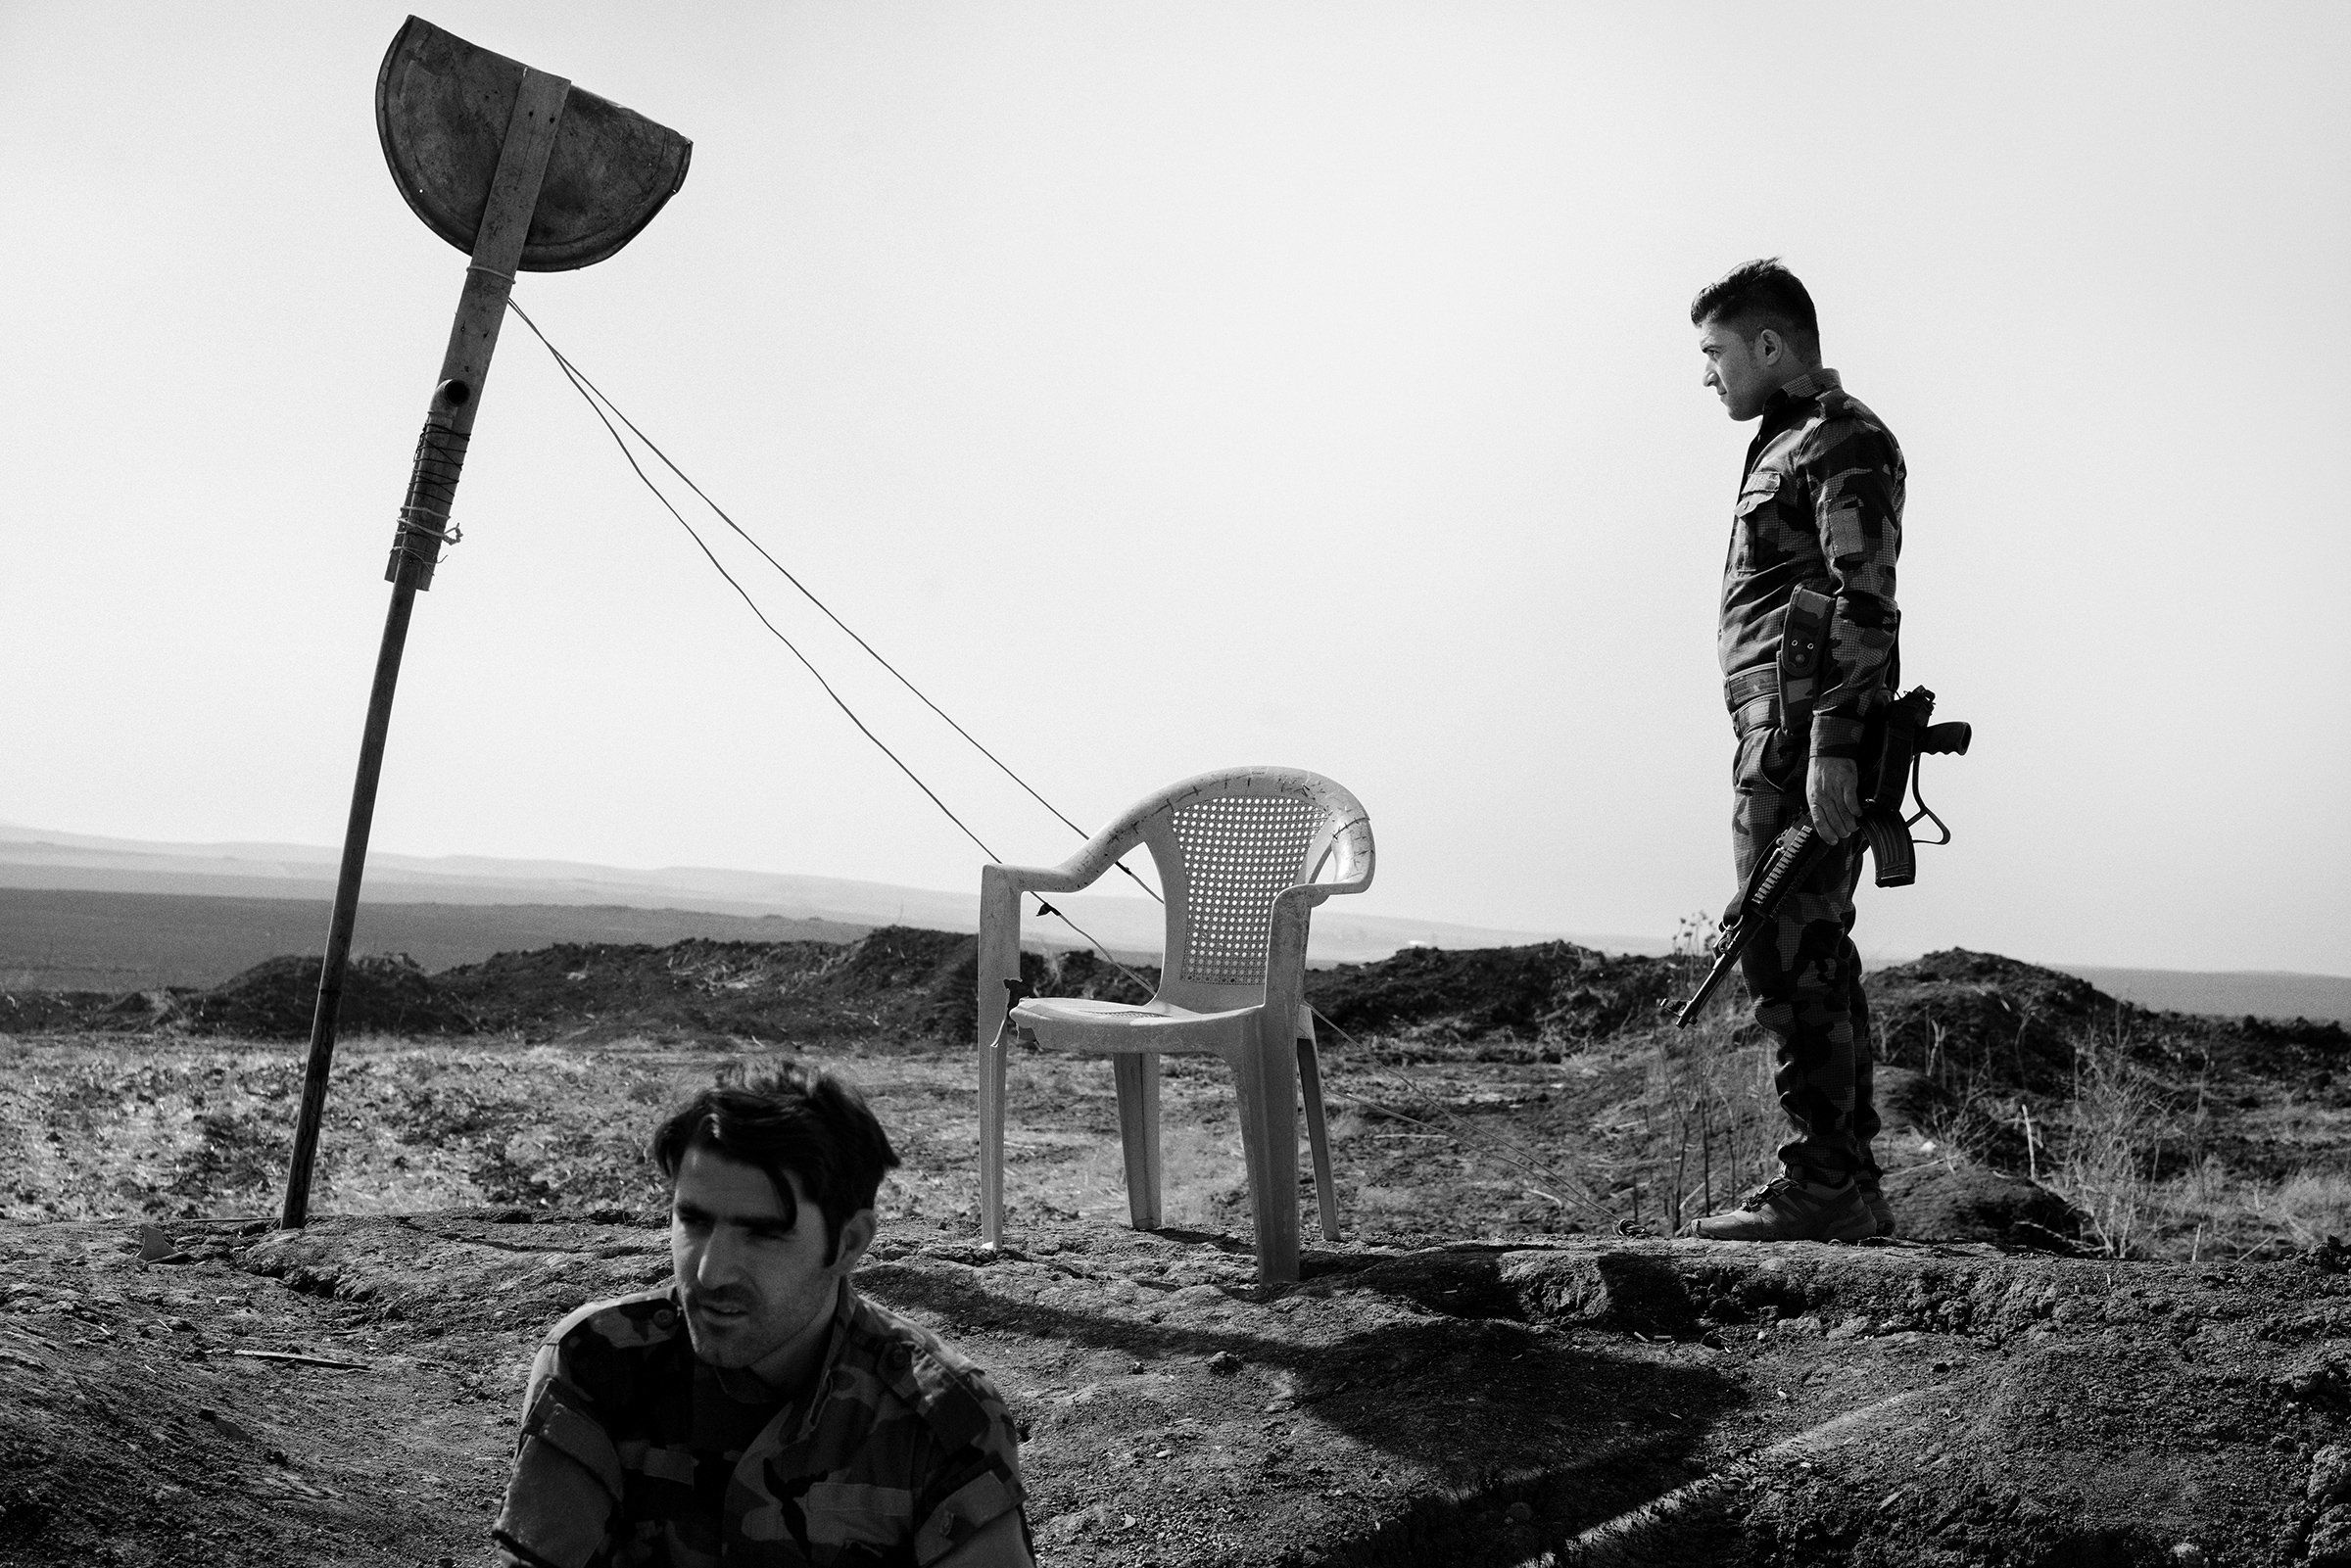 Kurdish fighters guard the new border between Kurdistan Regional Government-controlled territory and areas under the control of the Iraqi army near the town of Bashiqa, liberated from ISIS in 2016 by Iraqi and Kurdish forces.